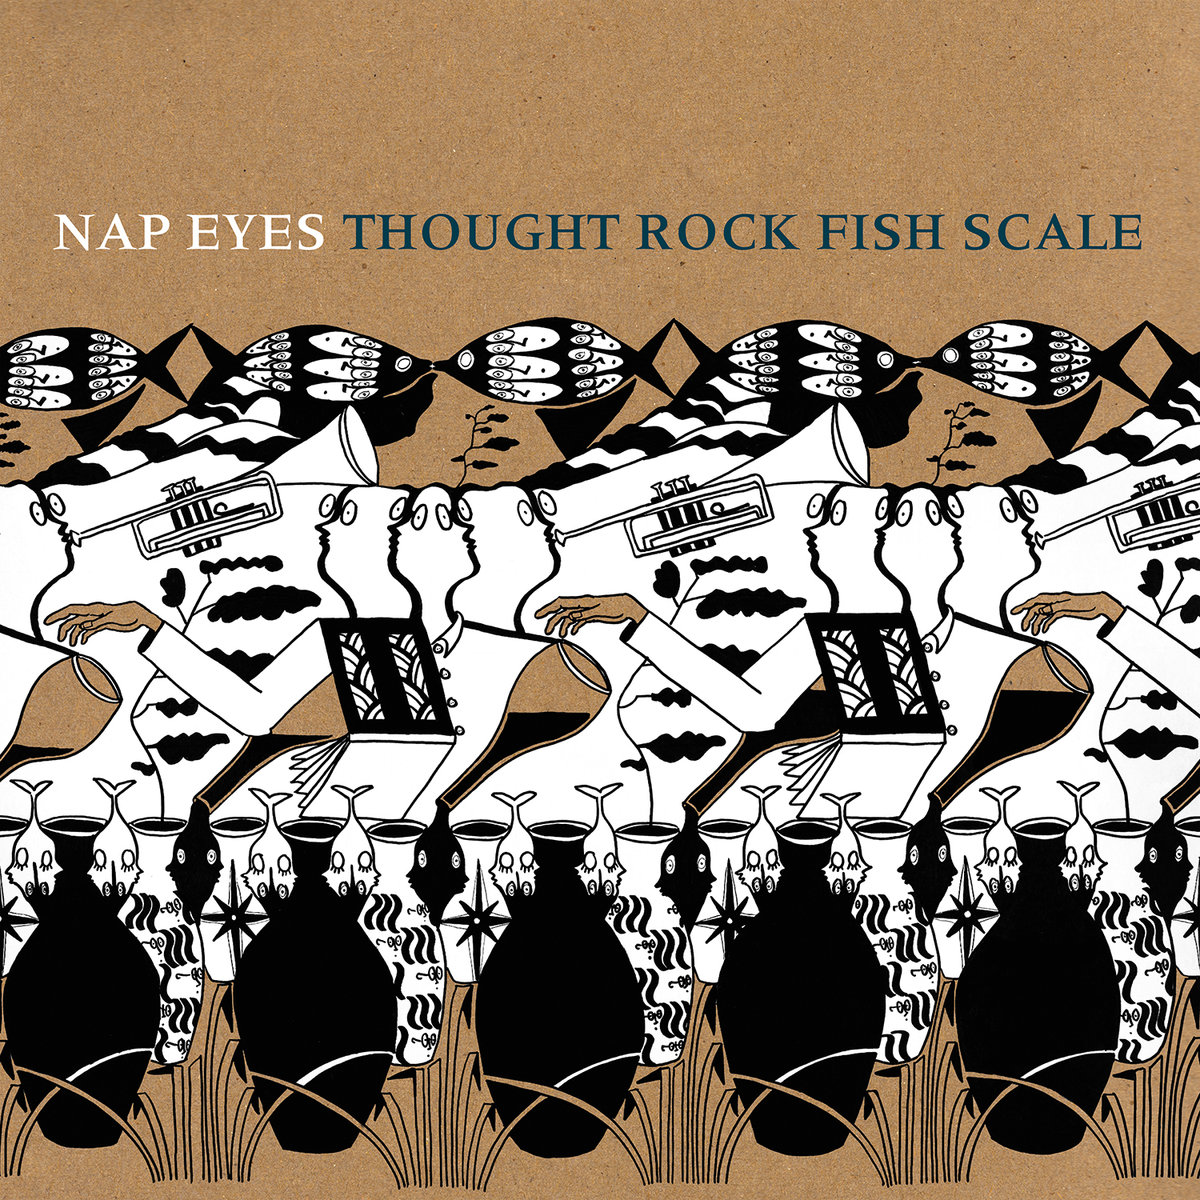 nap eyes thought rock fish scale